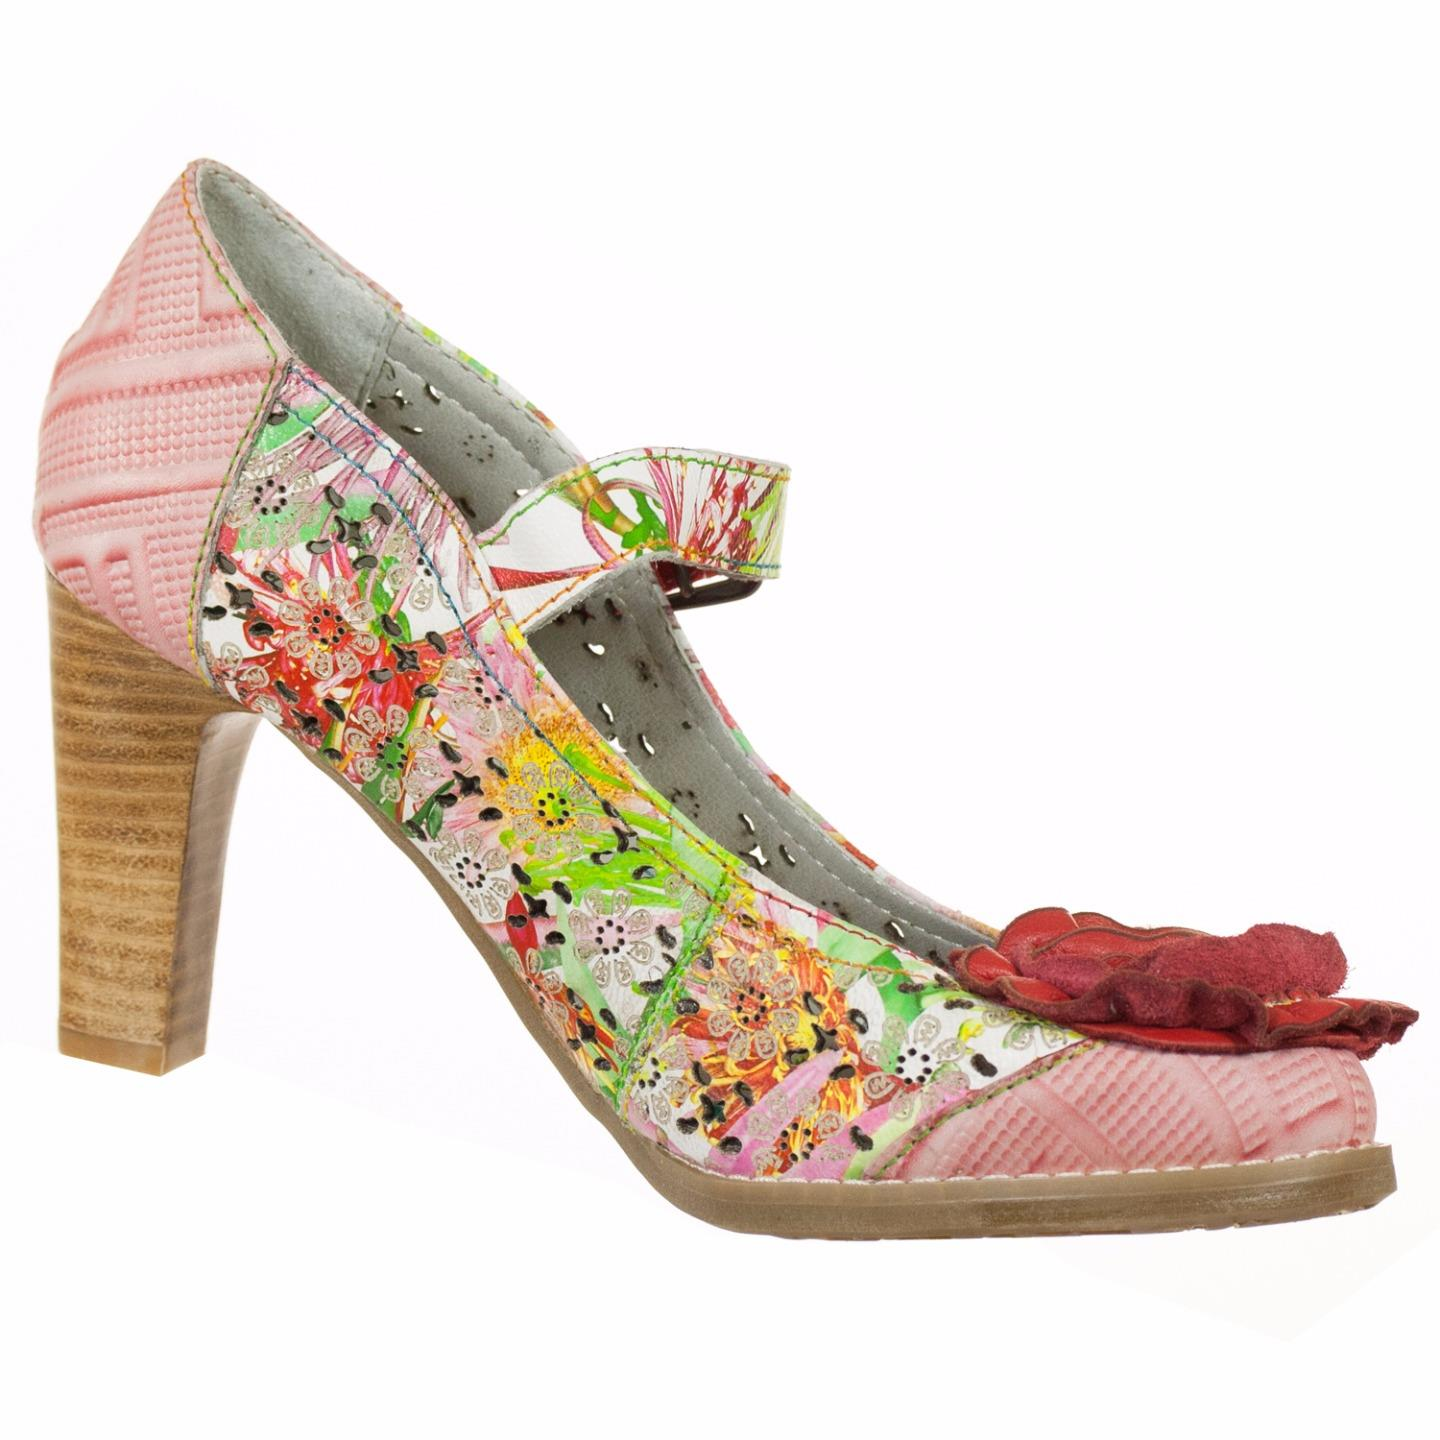 Spring Step L'Artiste Collection Cathy Women's Shoes Red Multi EU 37 US 7 by Spring Step